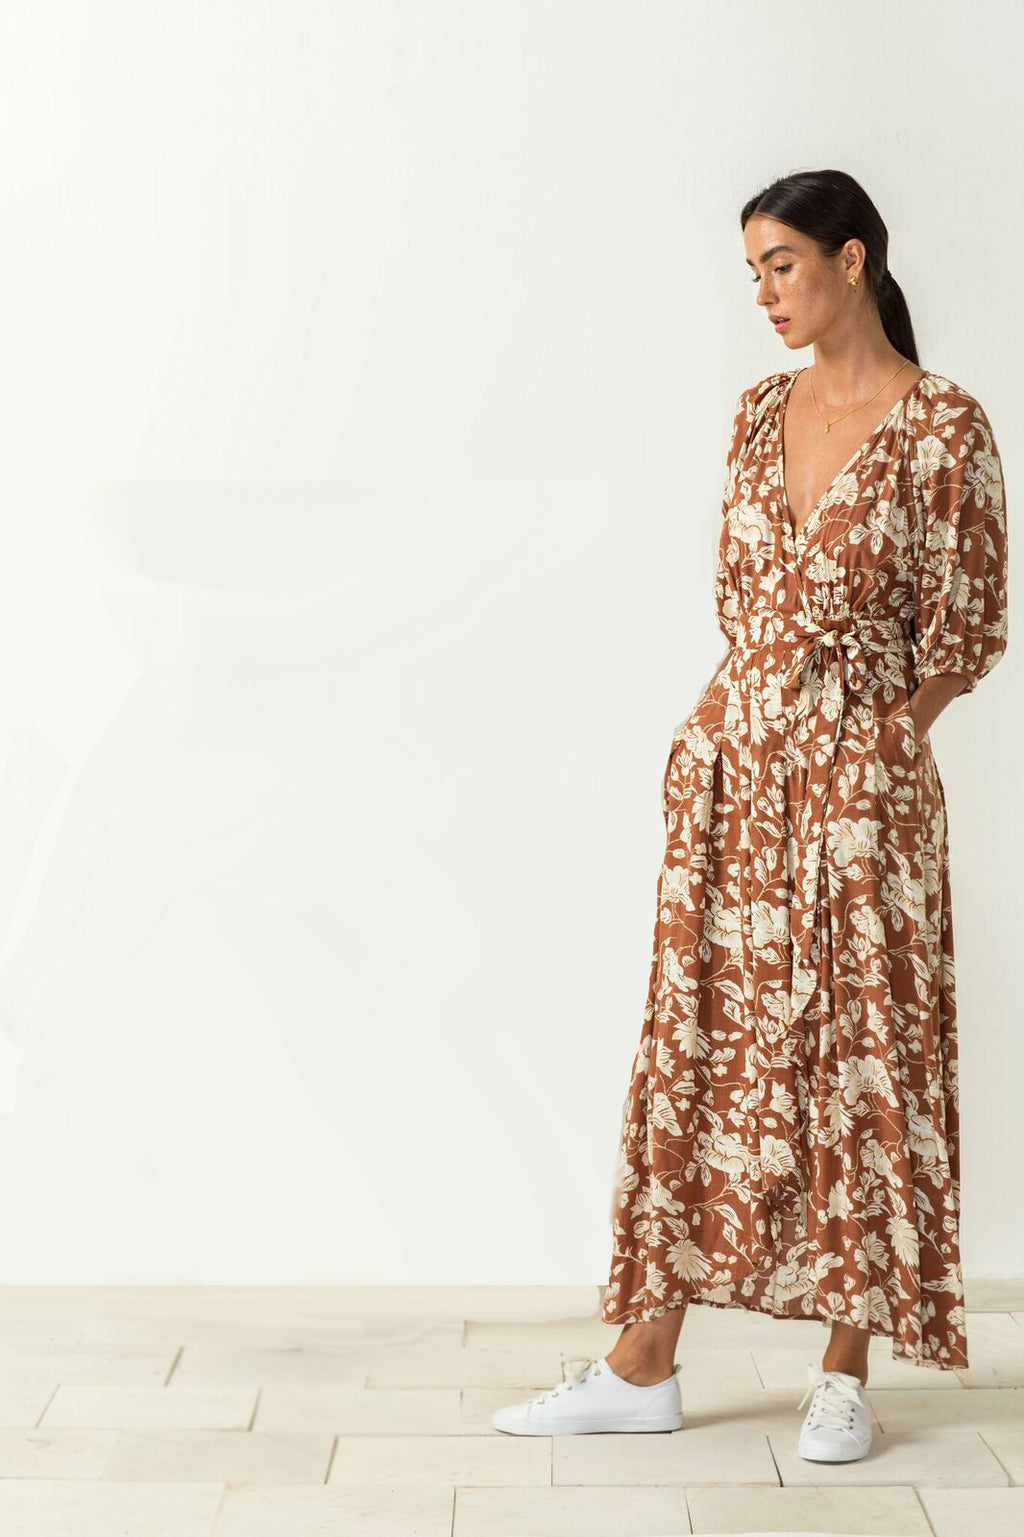 BIRD AND KITE - Bella Vita Wrap Dress online at PAYA boutique